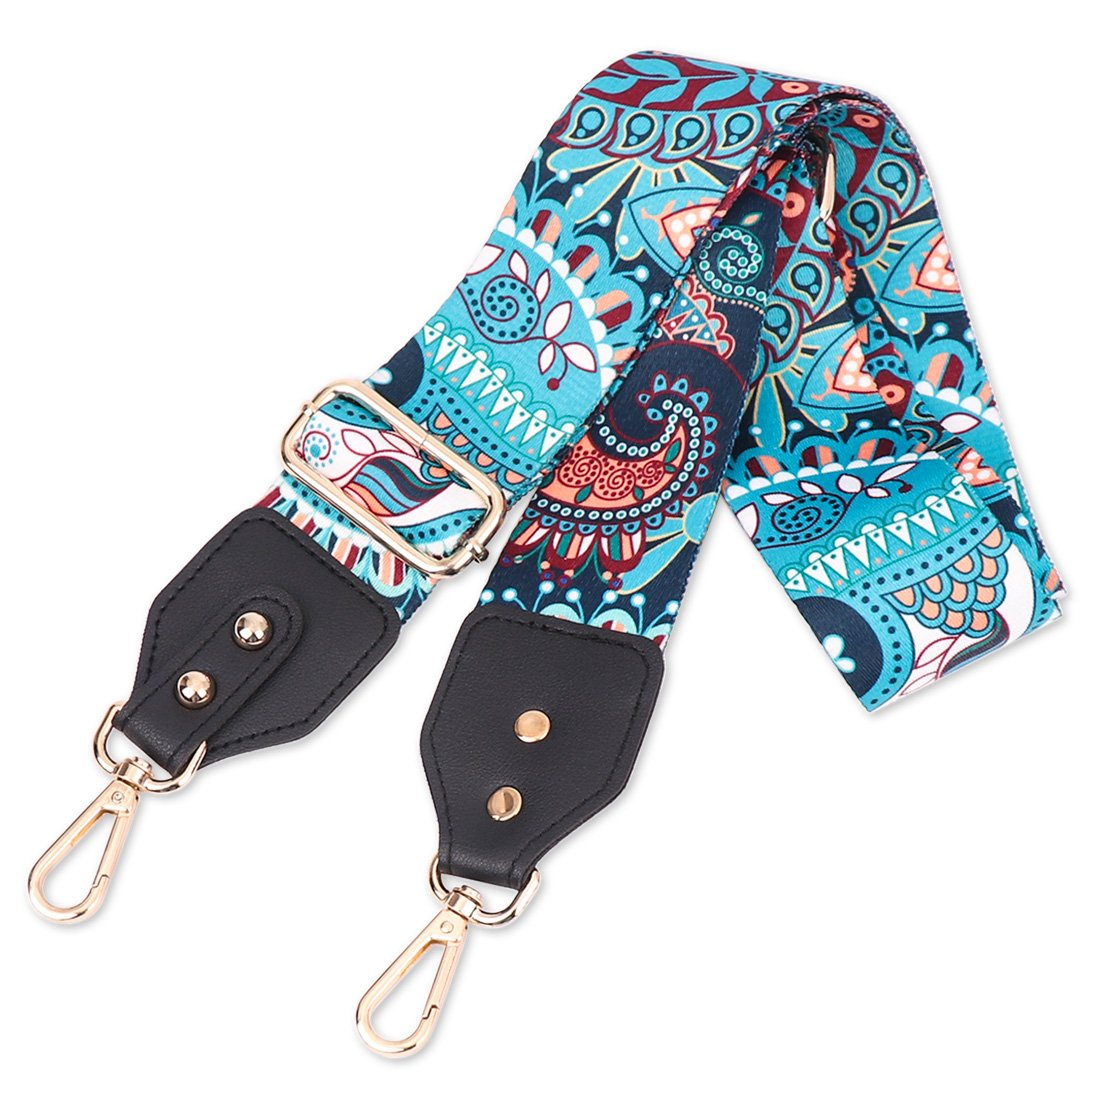 Louty 2'' Wide Adjustable Handbag Purse Strap Replacement Guitar Style Multicolor Canvas Crossbody Bag Straps by LOUTY (Image #1)